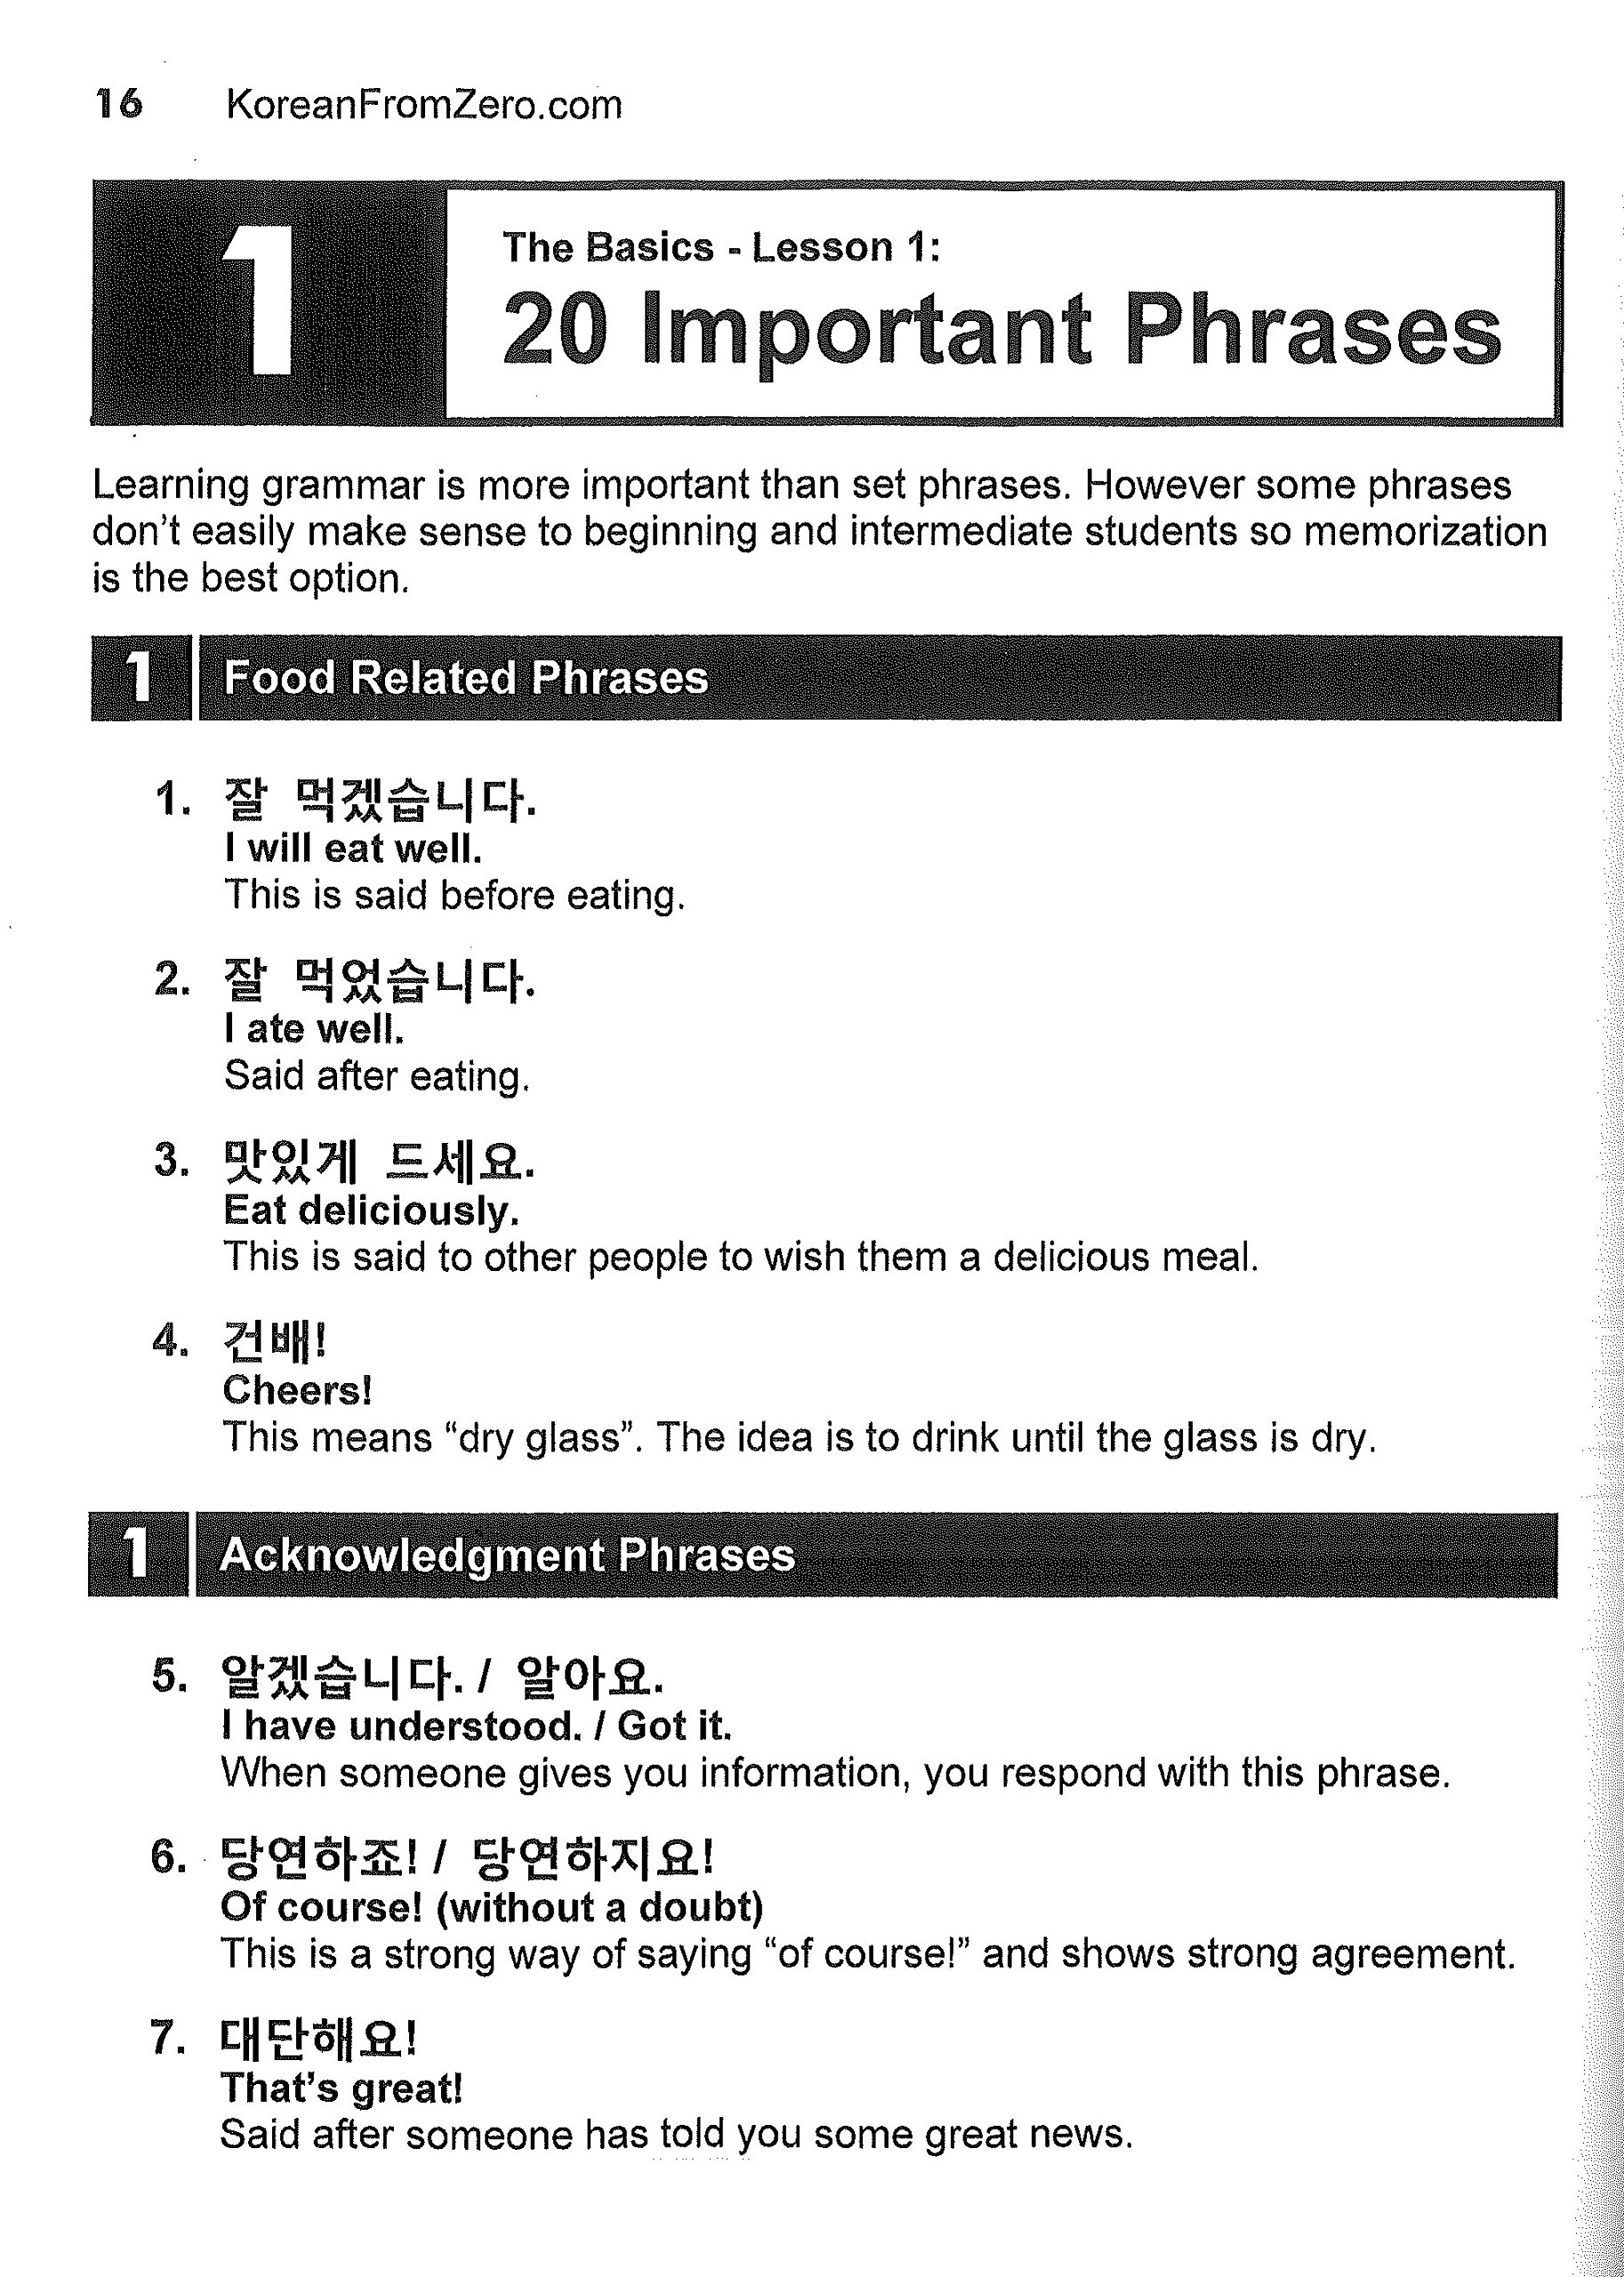 Korean From Zero! 2: Continue Mastering the Korean Language with ...